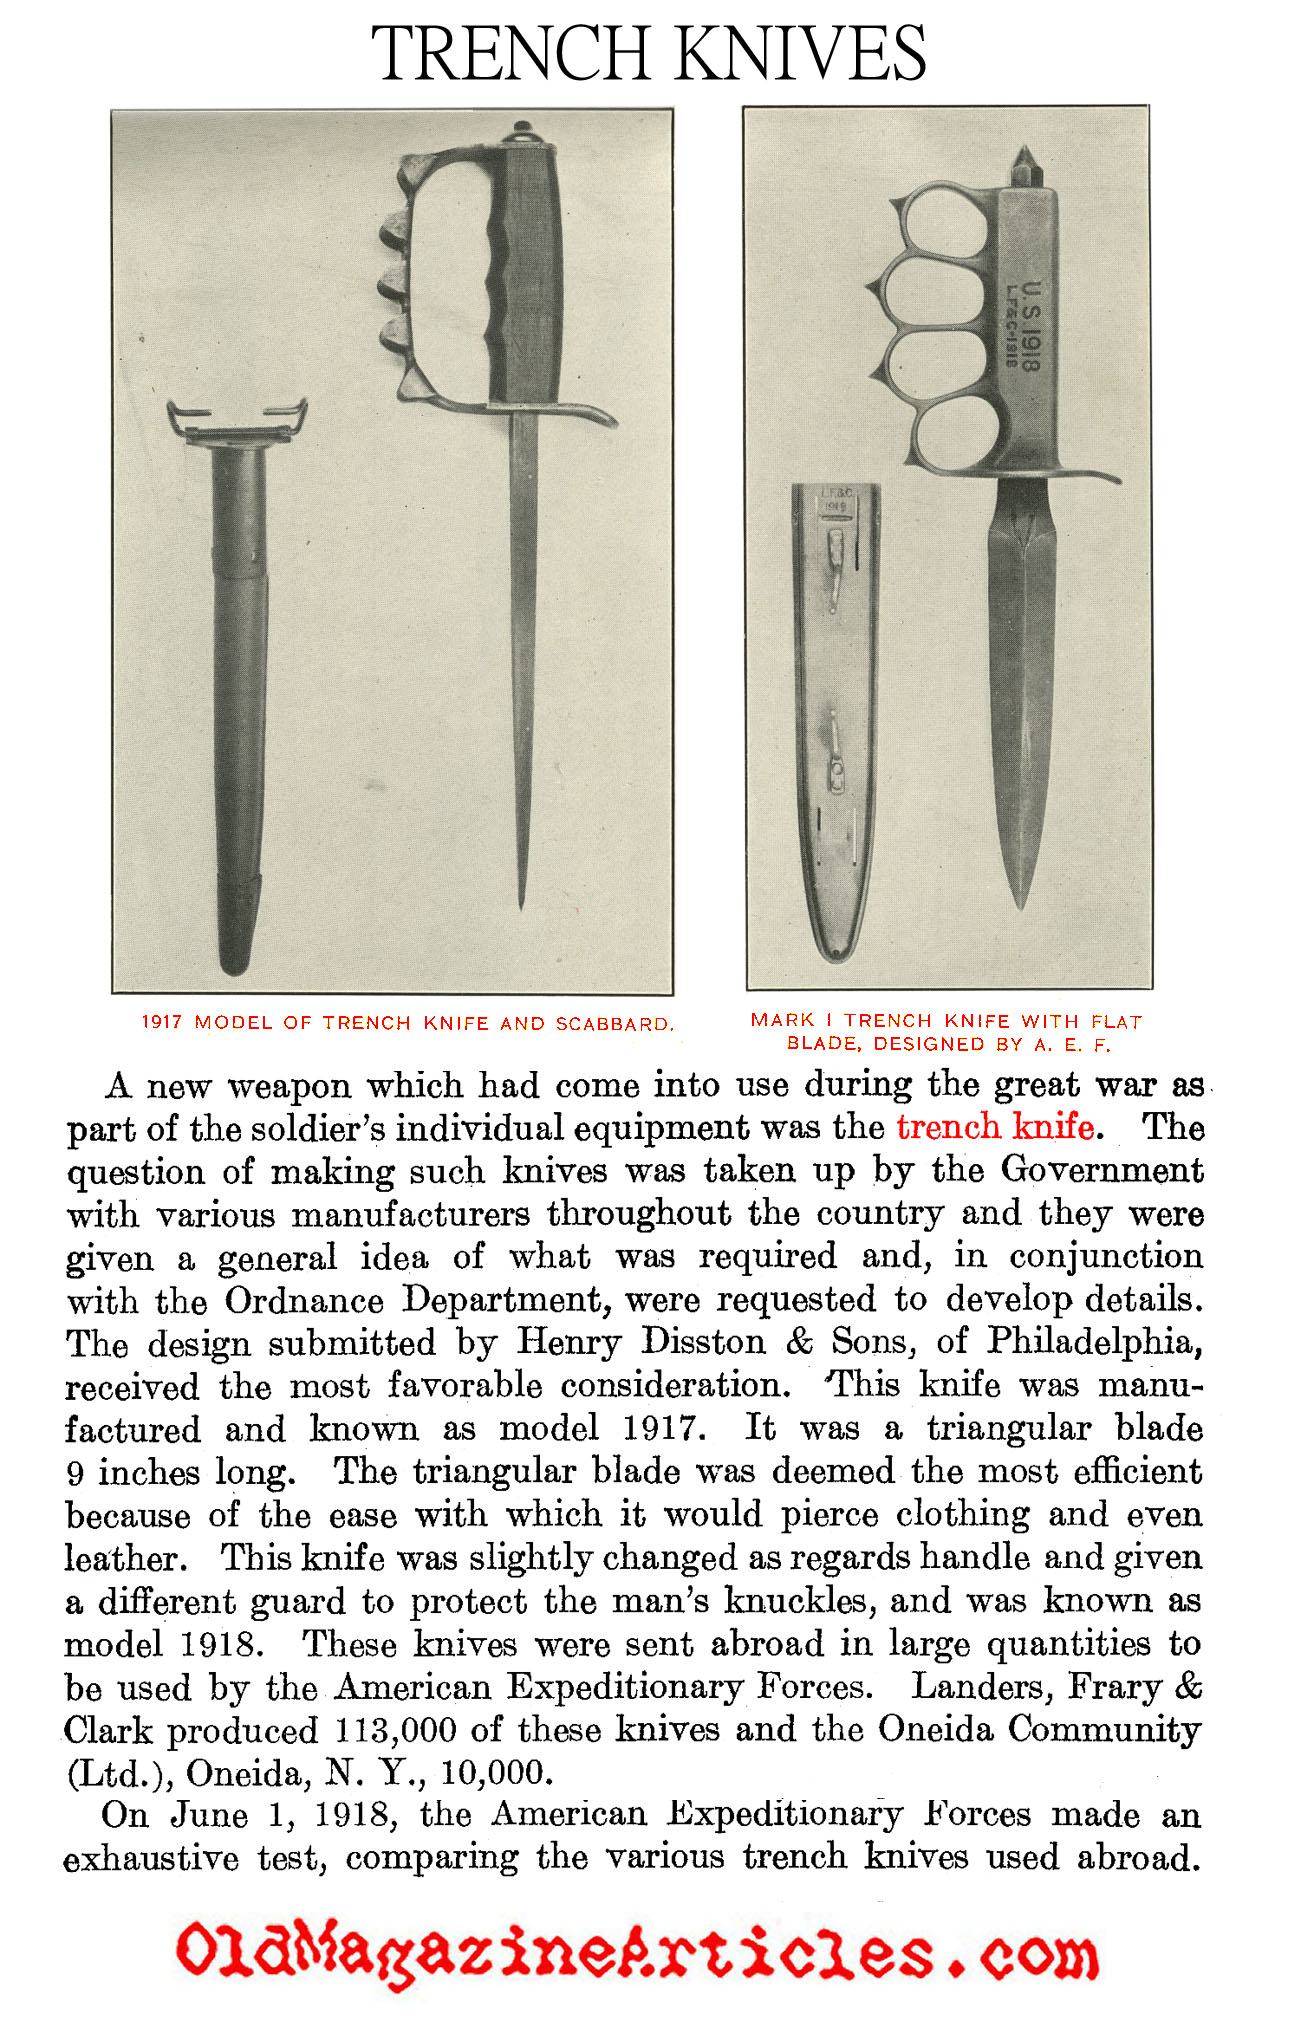 Army Knives Ww1 Trench Diagram Fighting World War One Us Rh Oldmagazinearticles Com Tanks